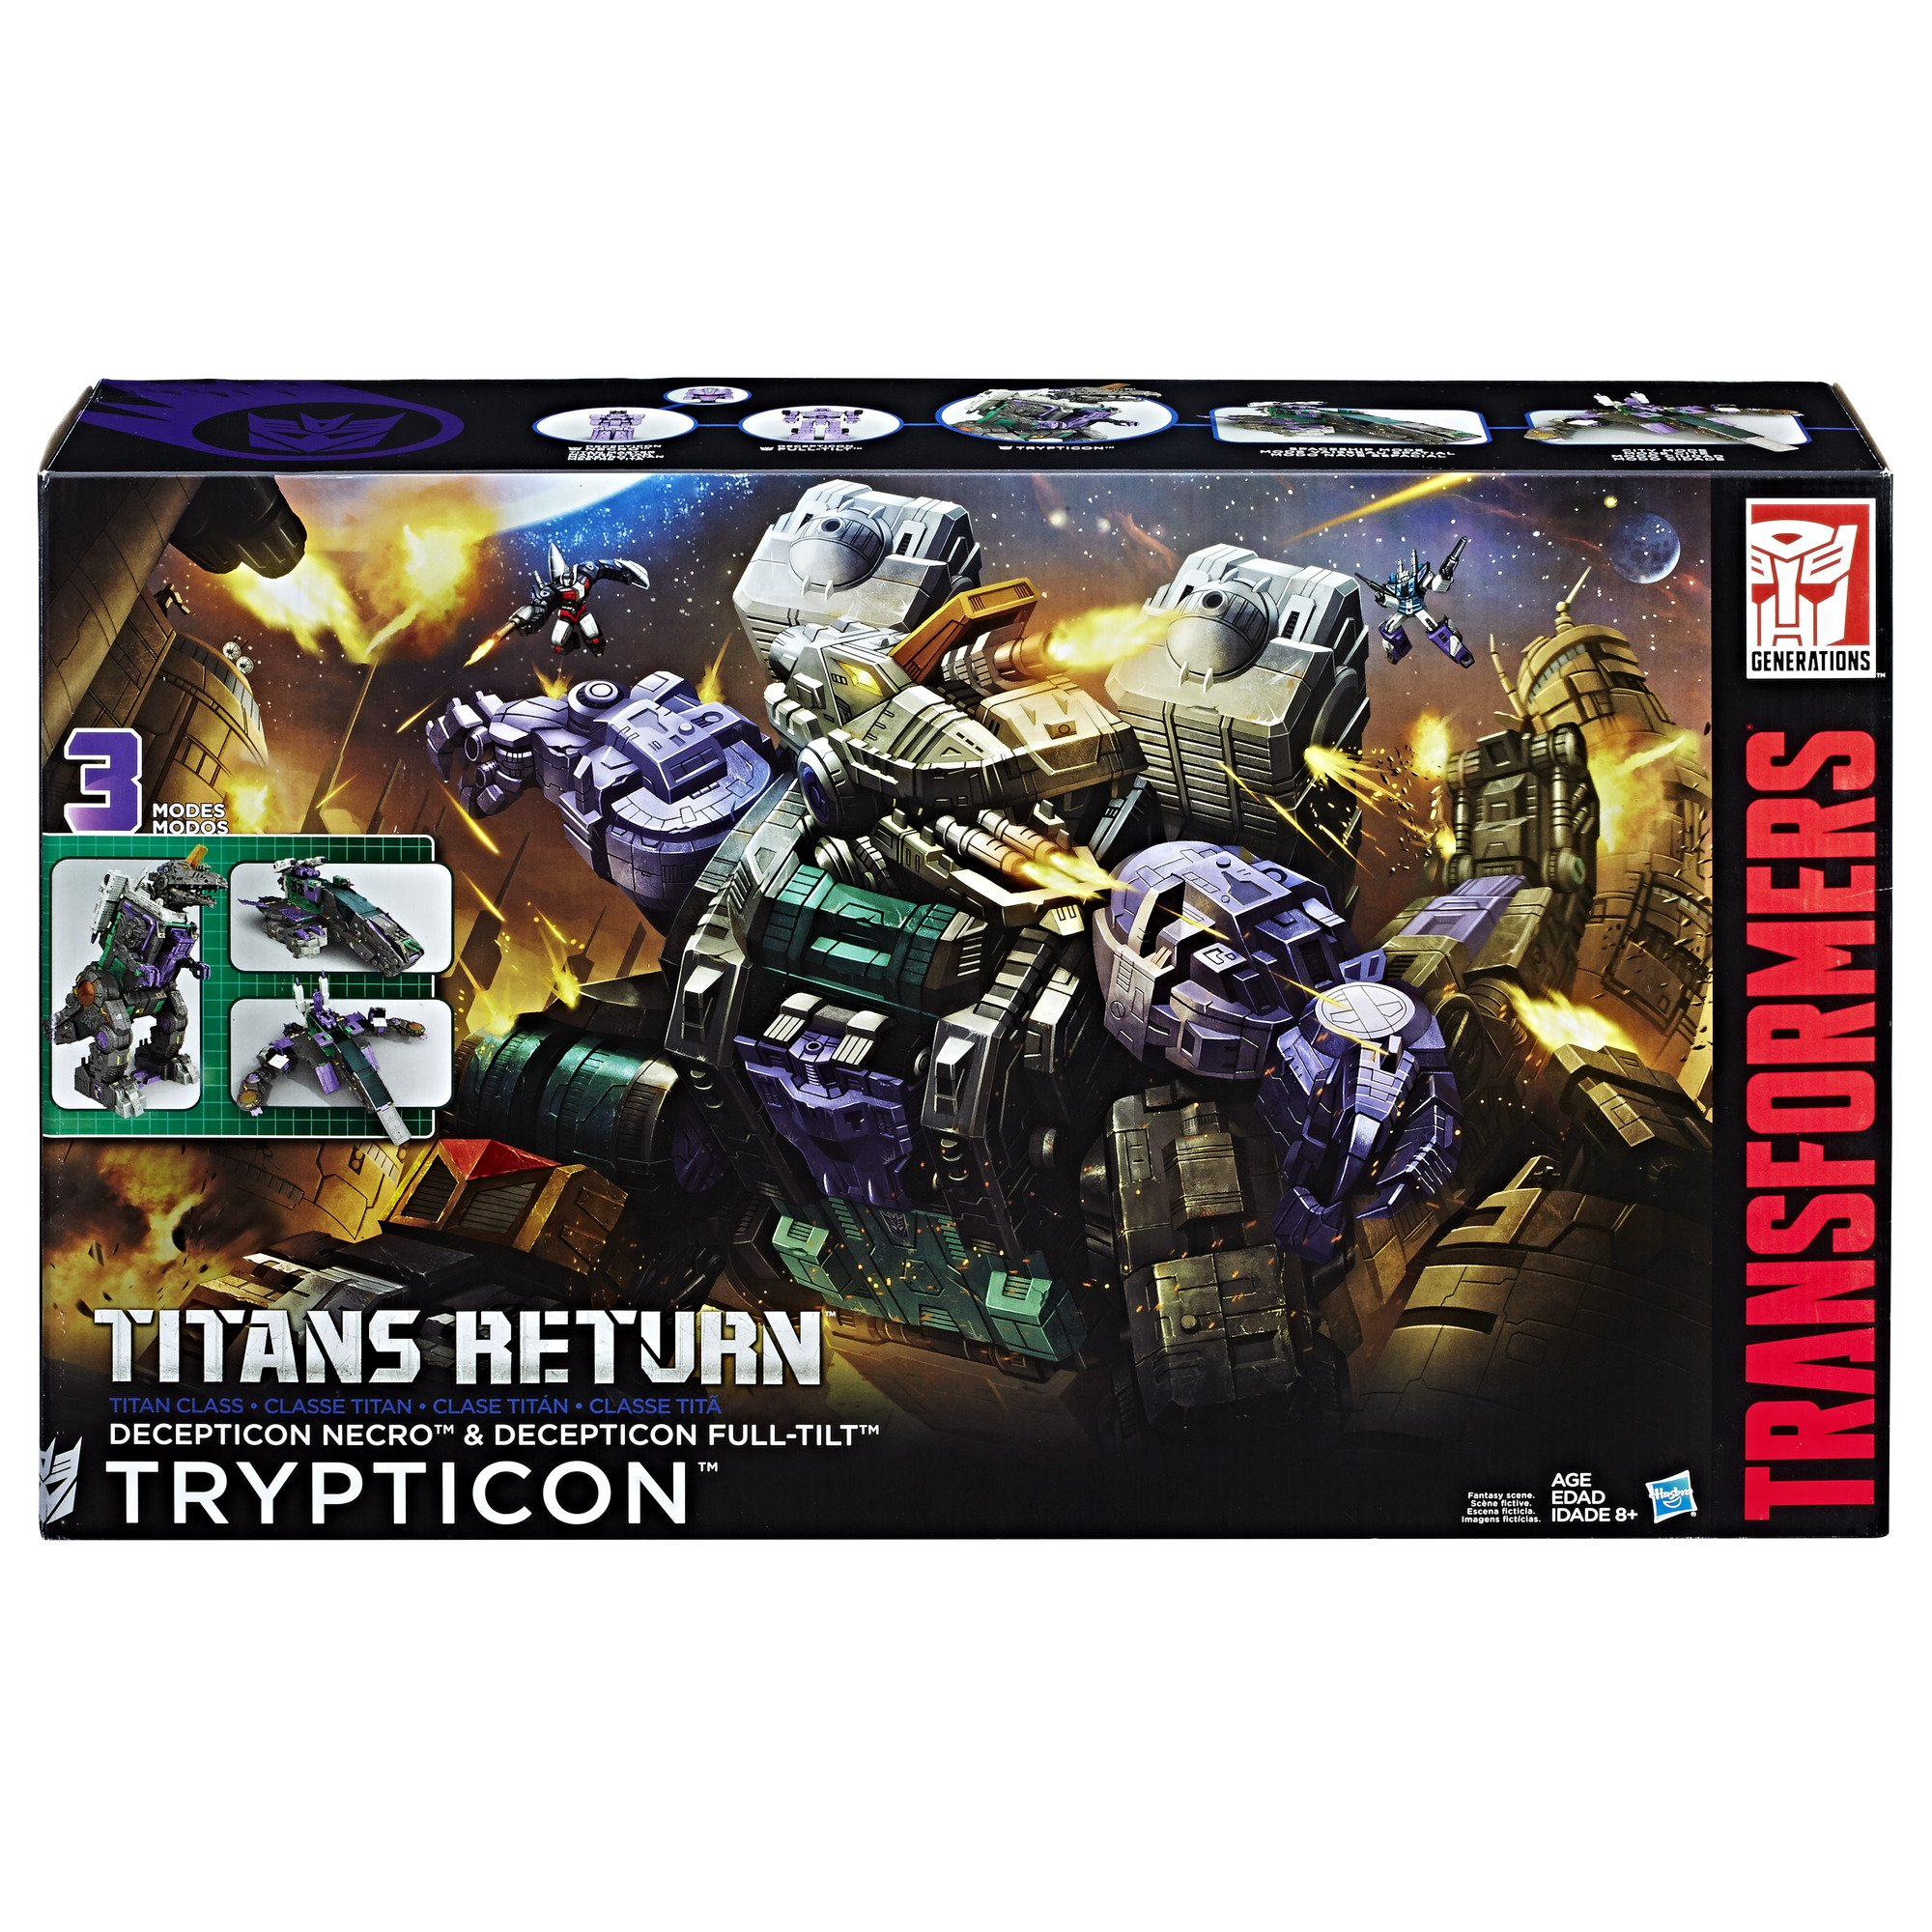 Transformers Generations Titans Return Titan Class Trypticon by Transformers (Image #2)